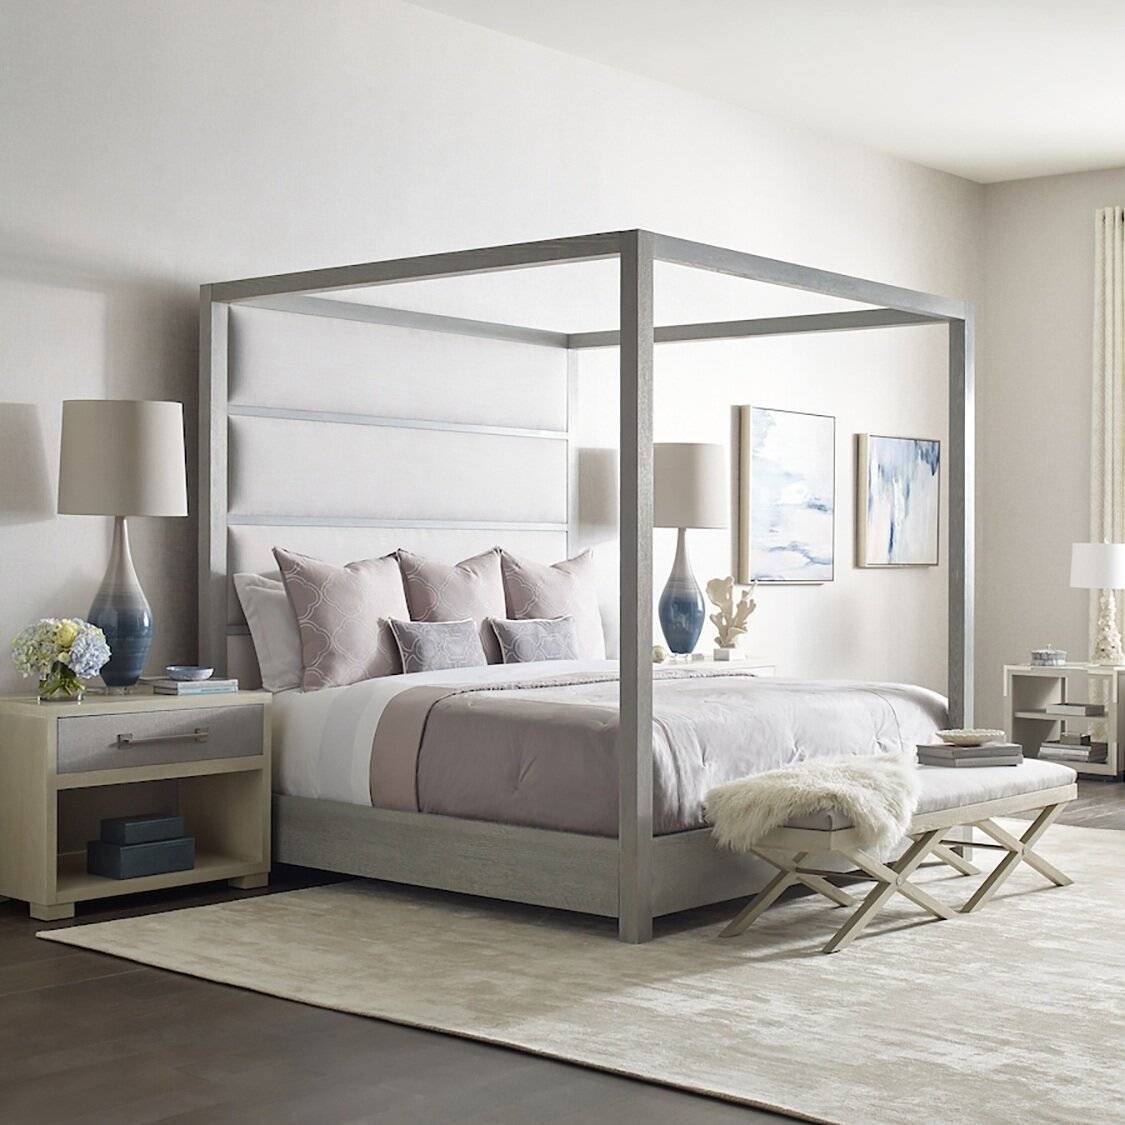 Bed & Bath - Frame your space with furniture that embodies your style. From bamboo sheets to designer bed ensembles, create a luxurious sanctuary where you begin and end each day.